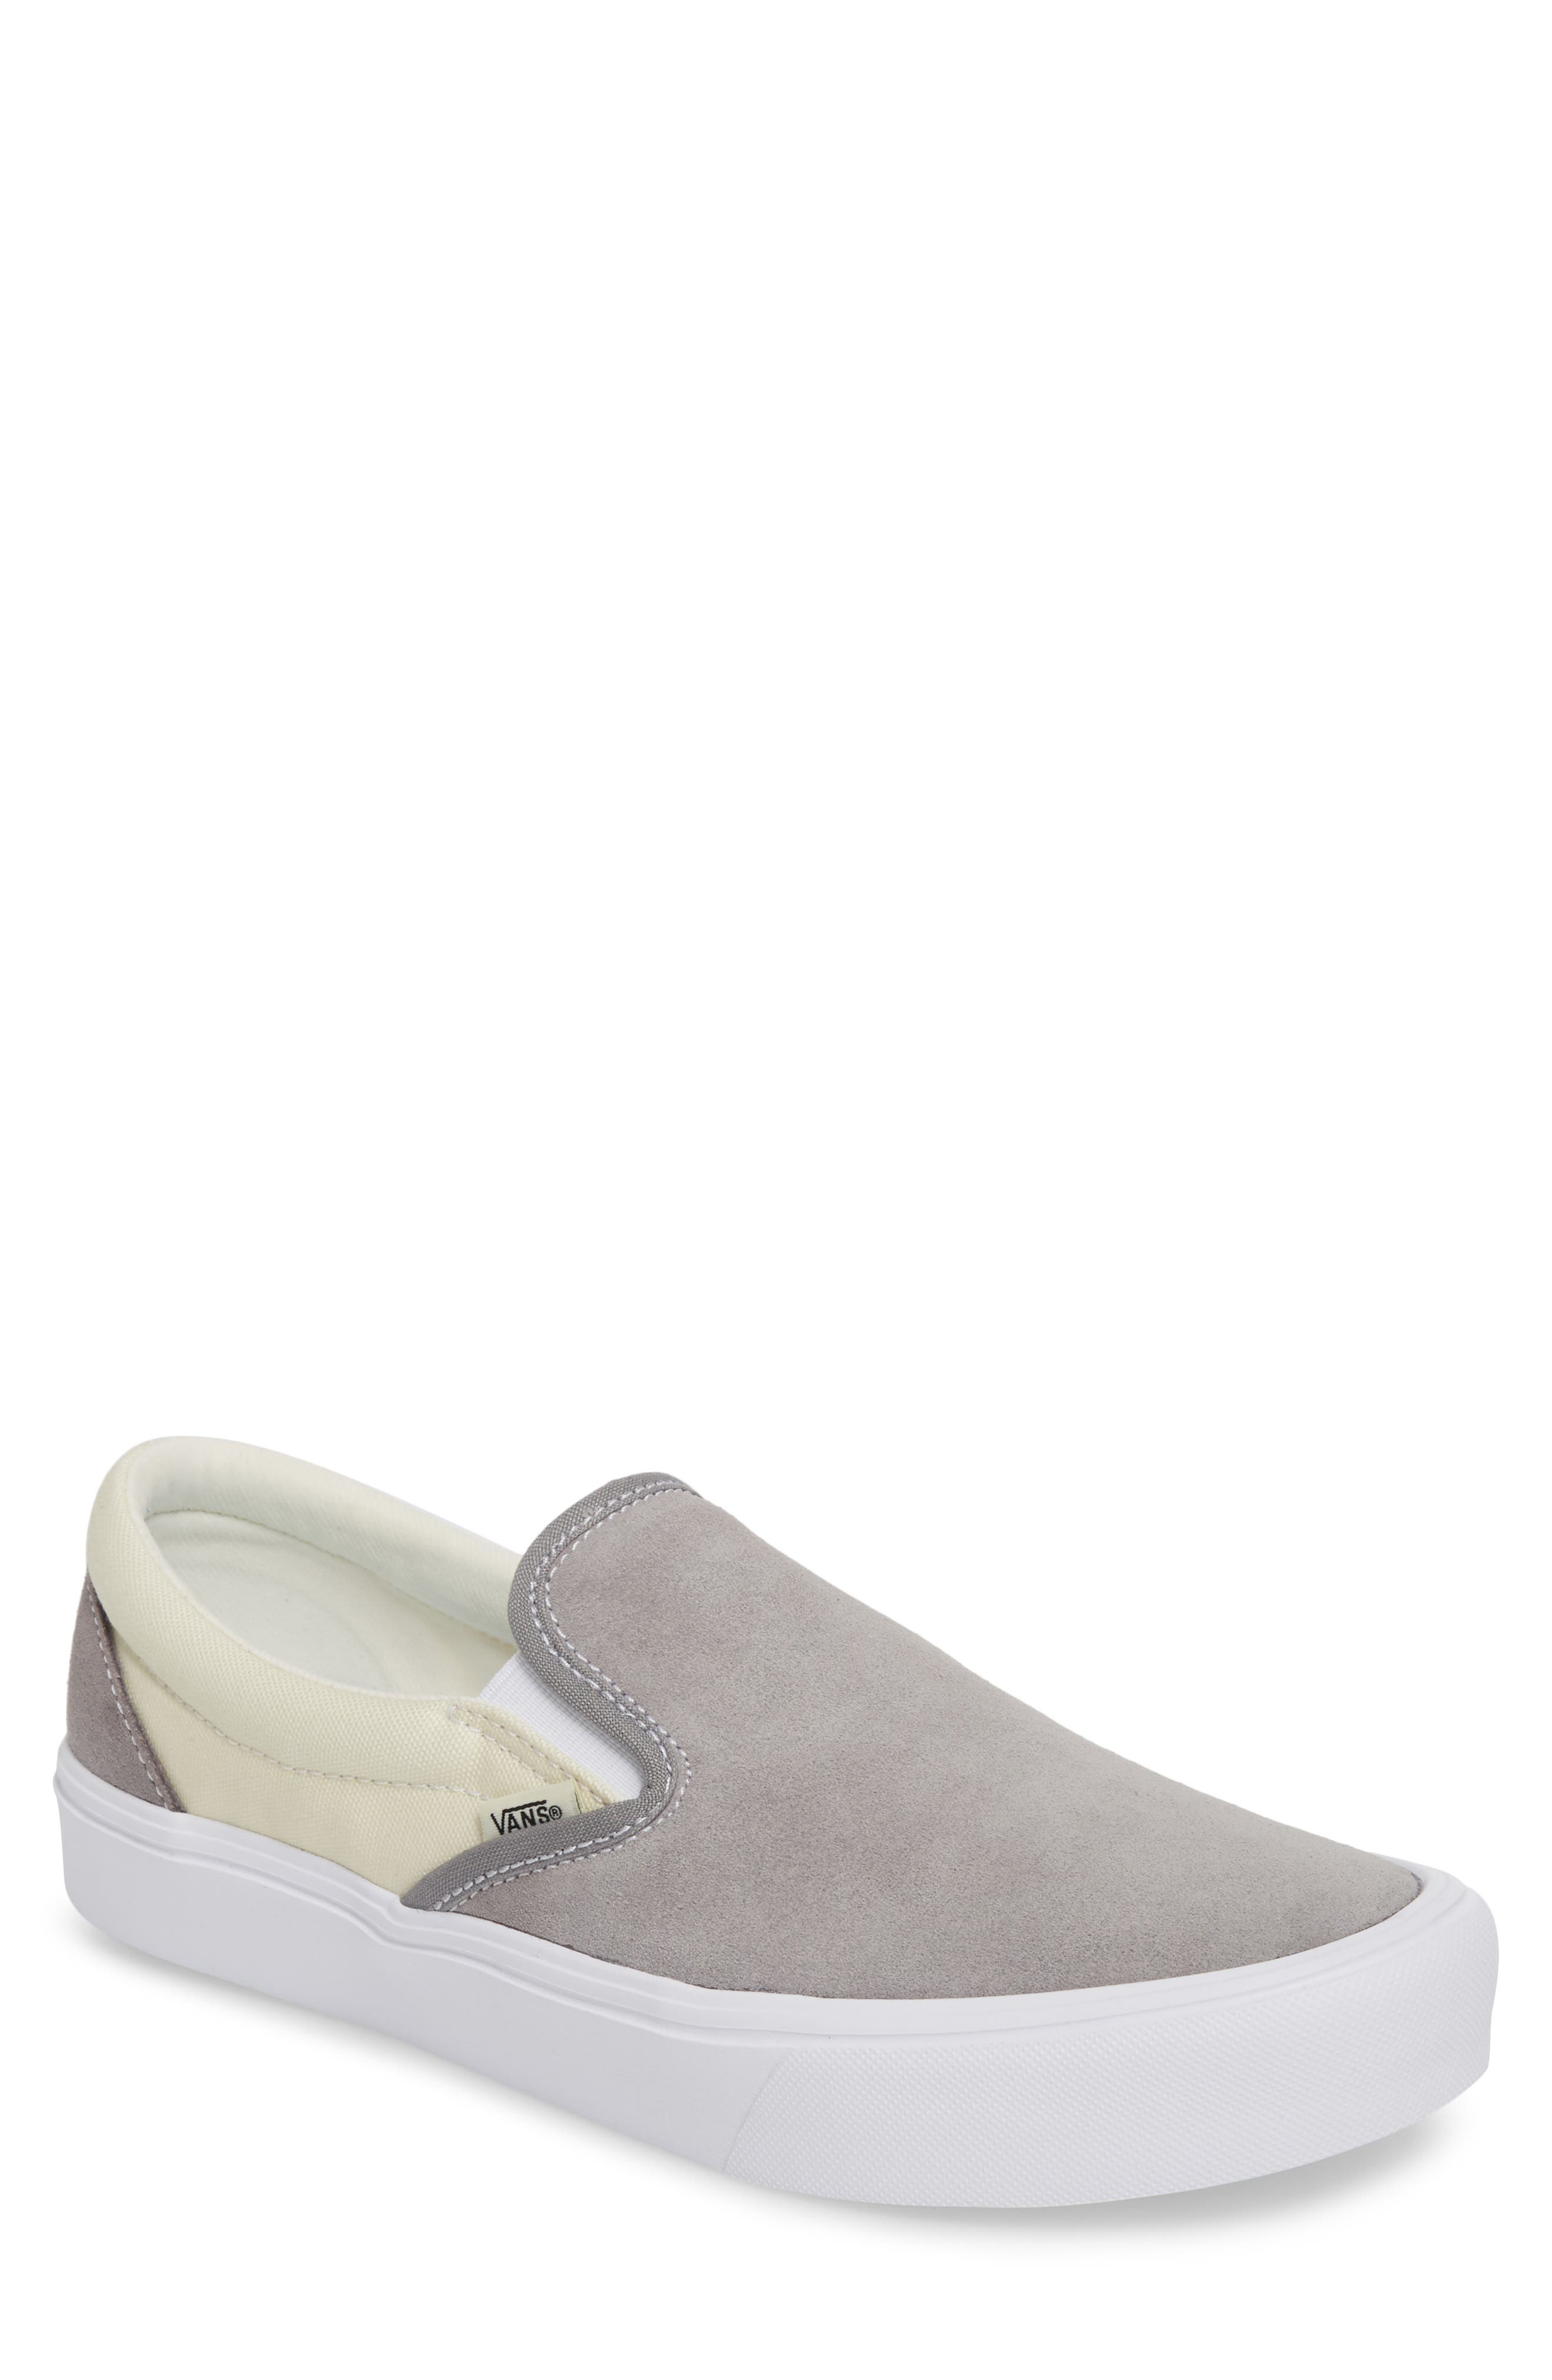 Lite Slip-On Sneaker,                         Main,                         color, Frost Grey/Marshmallow Leather